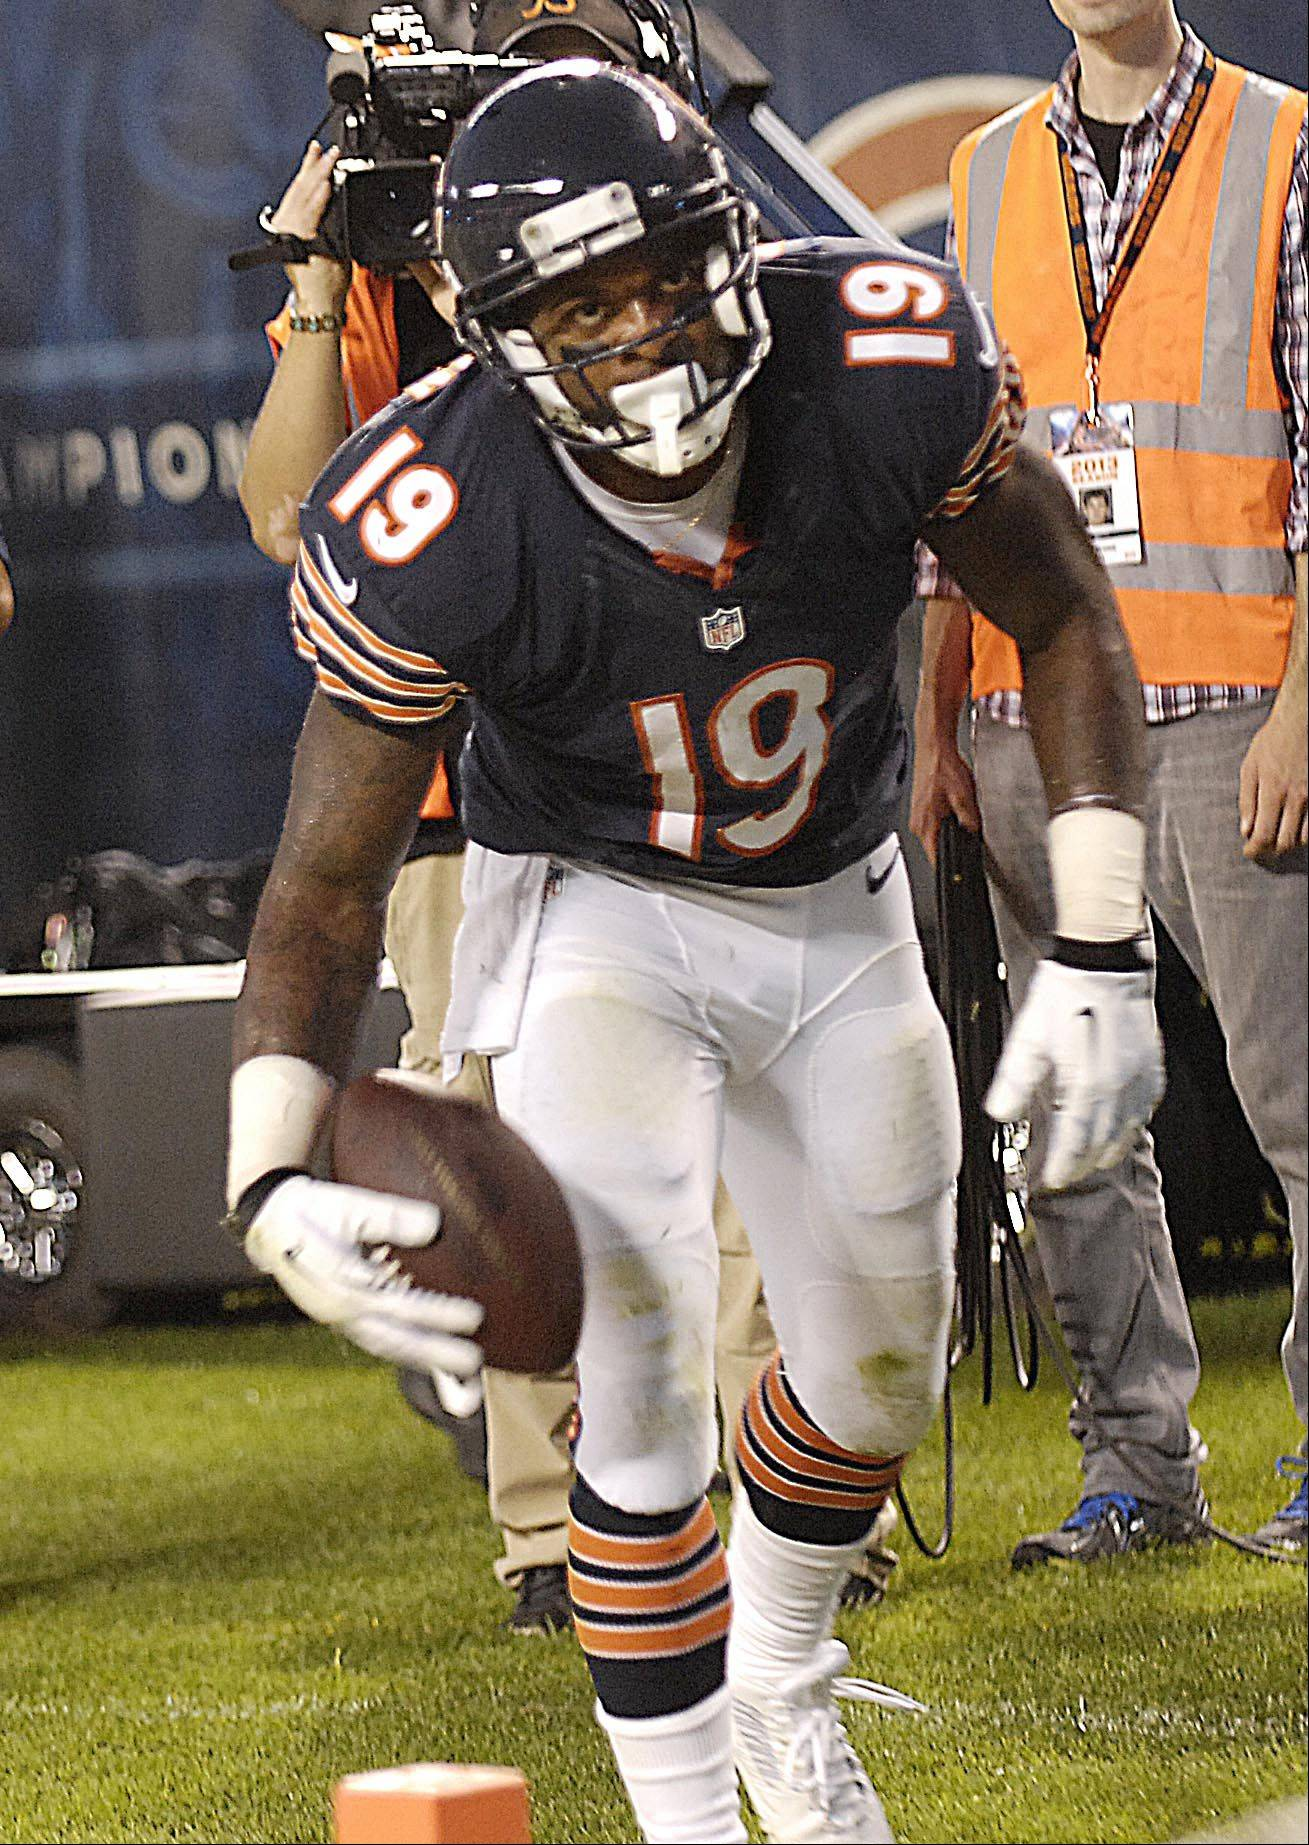 Bears wide receiver Joe Anderson turns after catching a touchdown pass Thursday against the Cleveland Browns in the last preseason game at Soldier Field in Chicago.